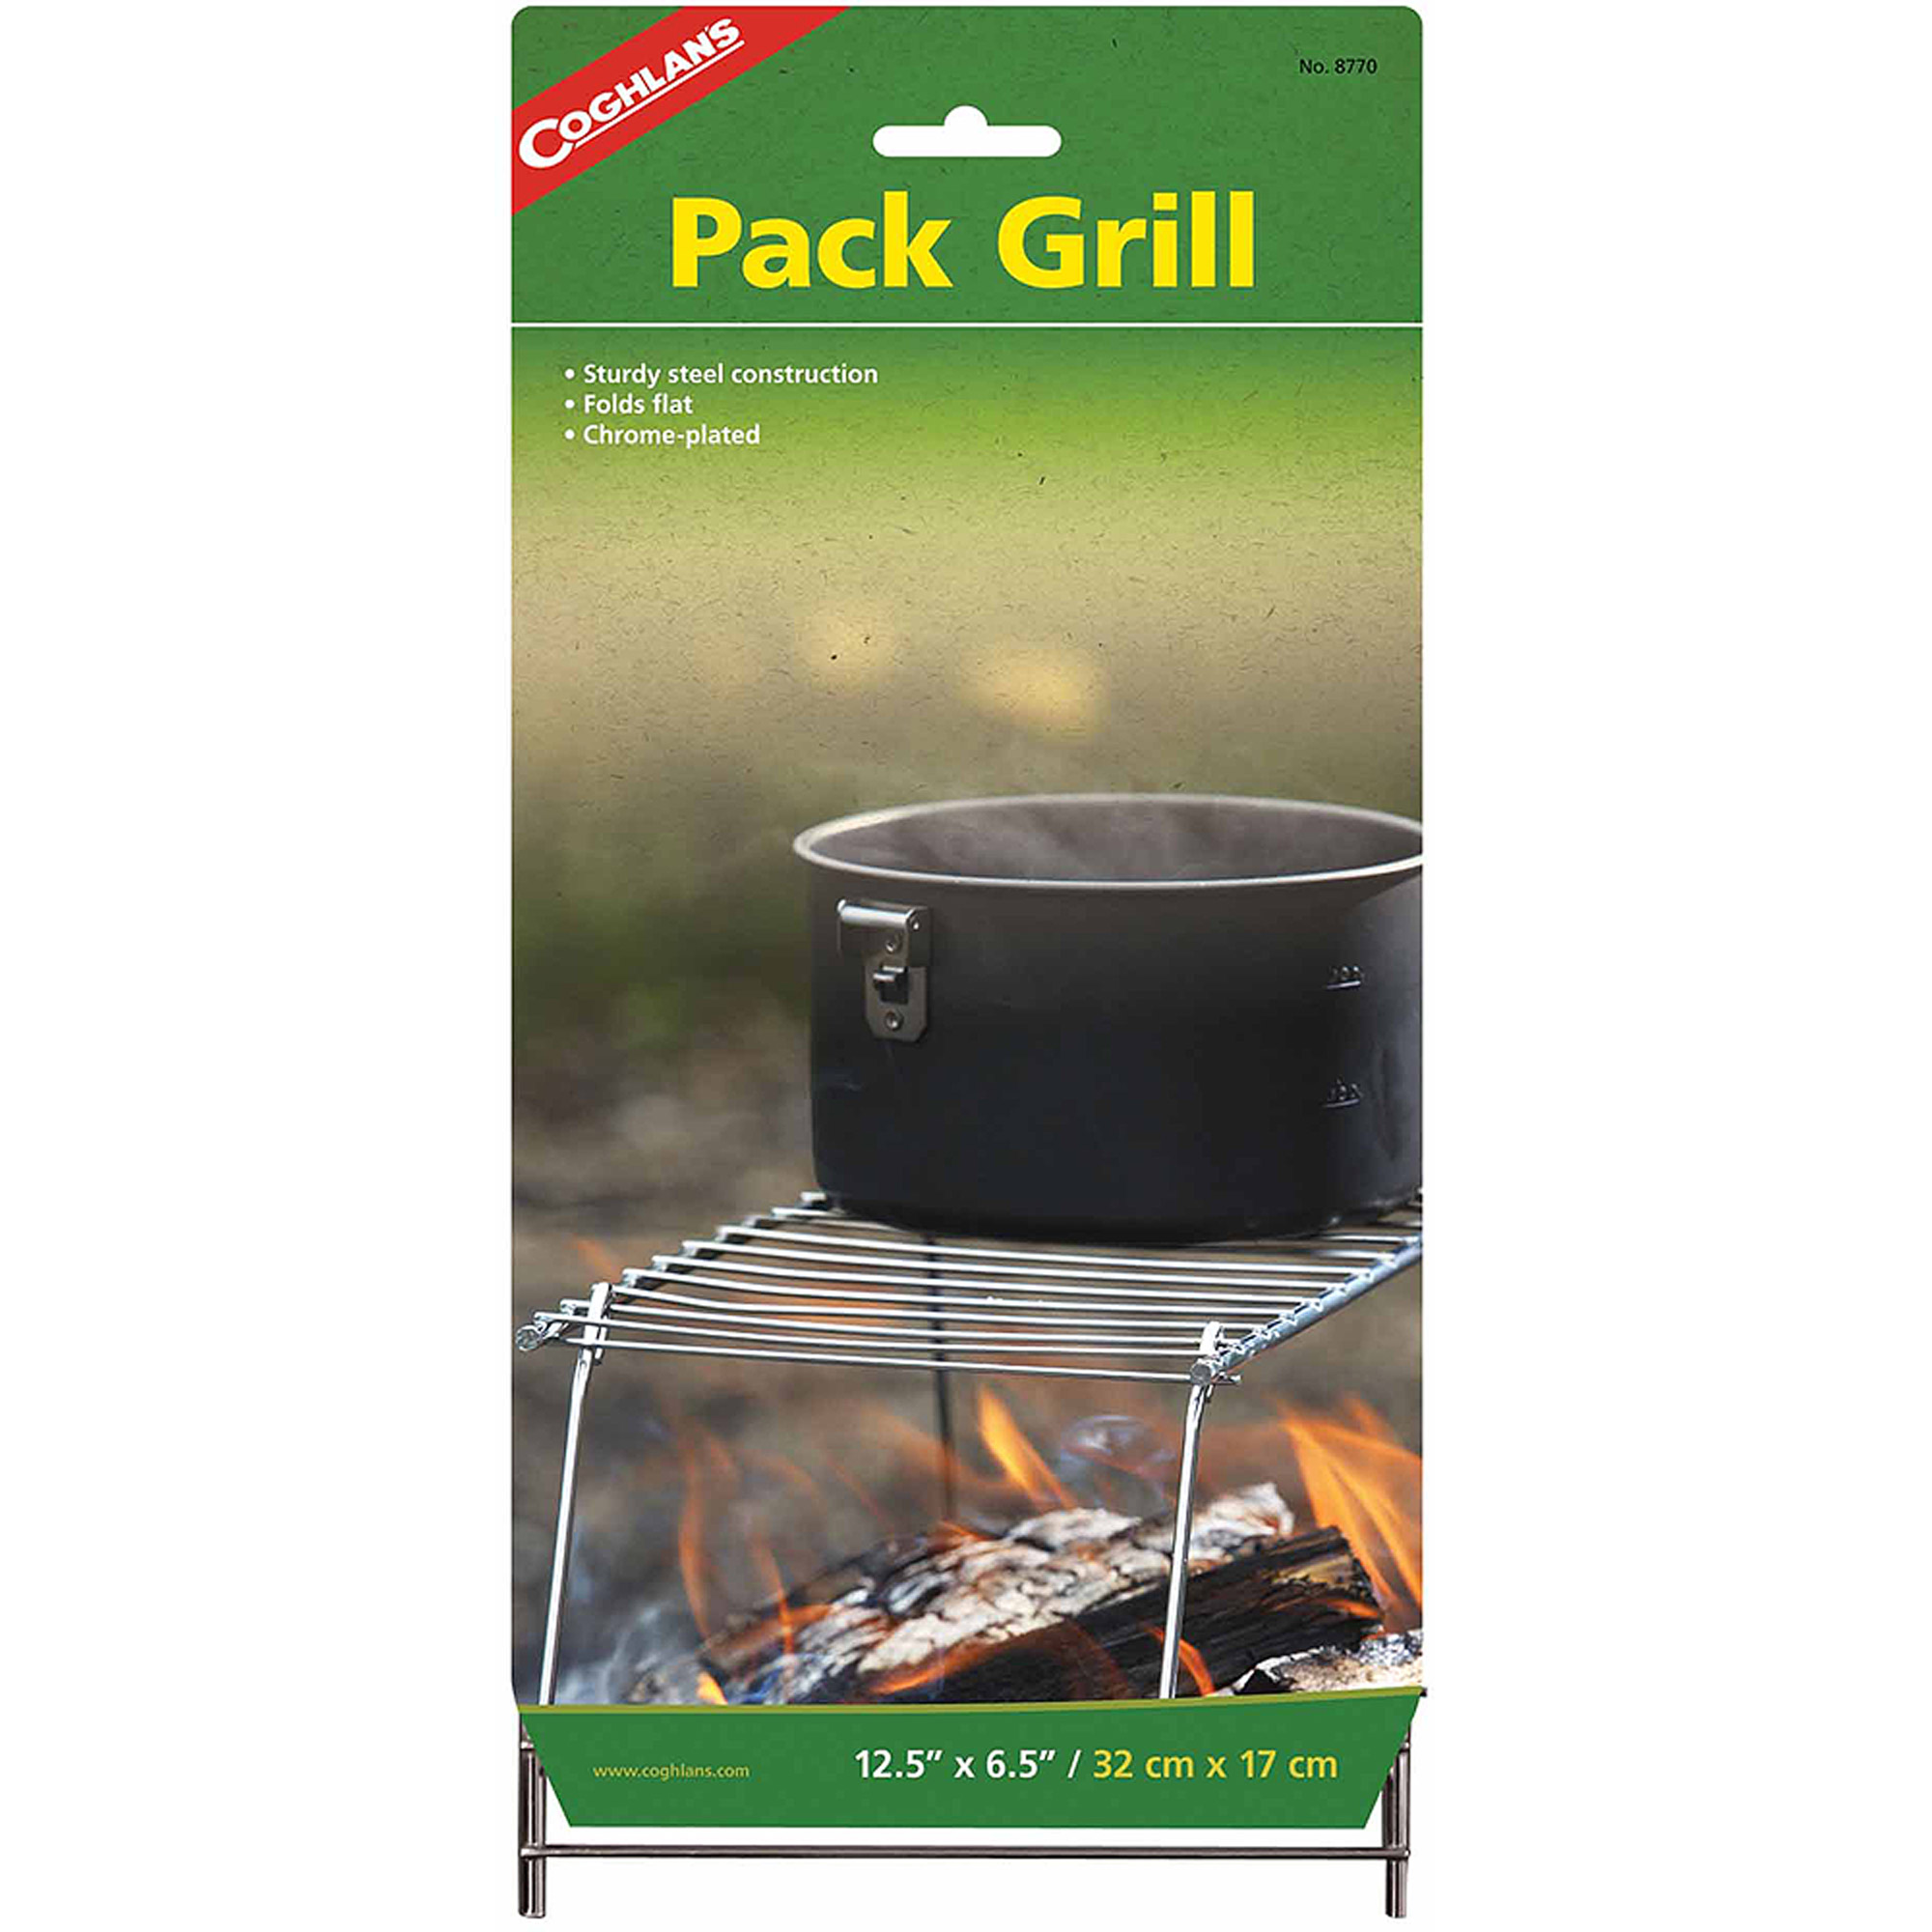 Coghlan's 8770 Pack Grill